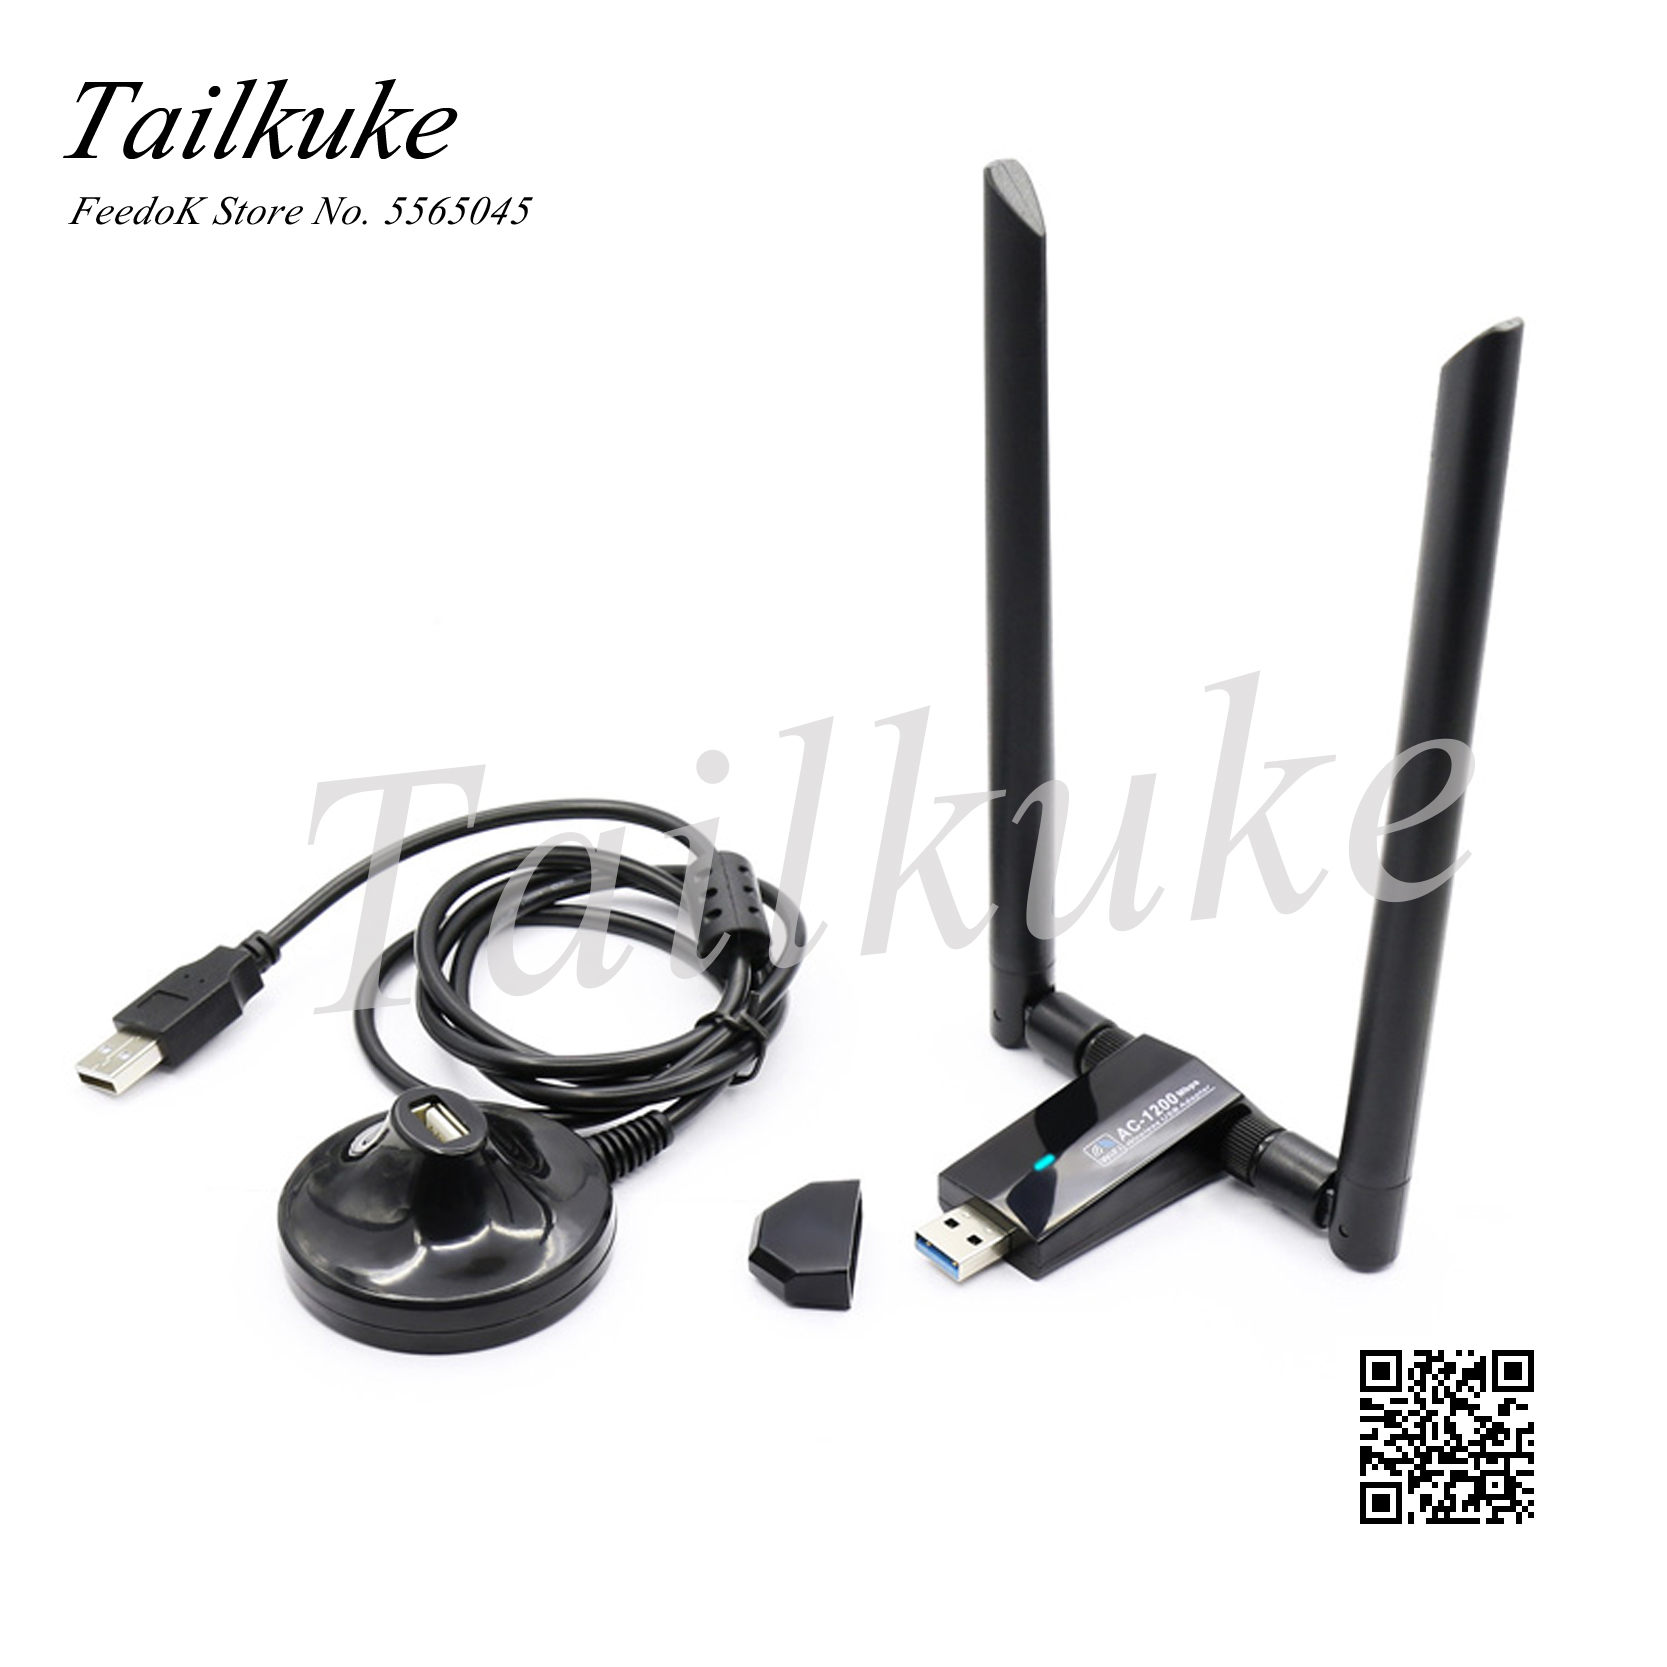 Rtl8812au Kali Linux Network Card Penetration Test Usb Wireless WiFi Transmitter Receiver AP Gigabit